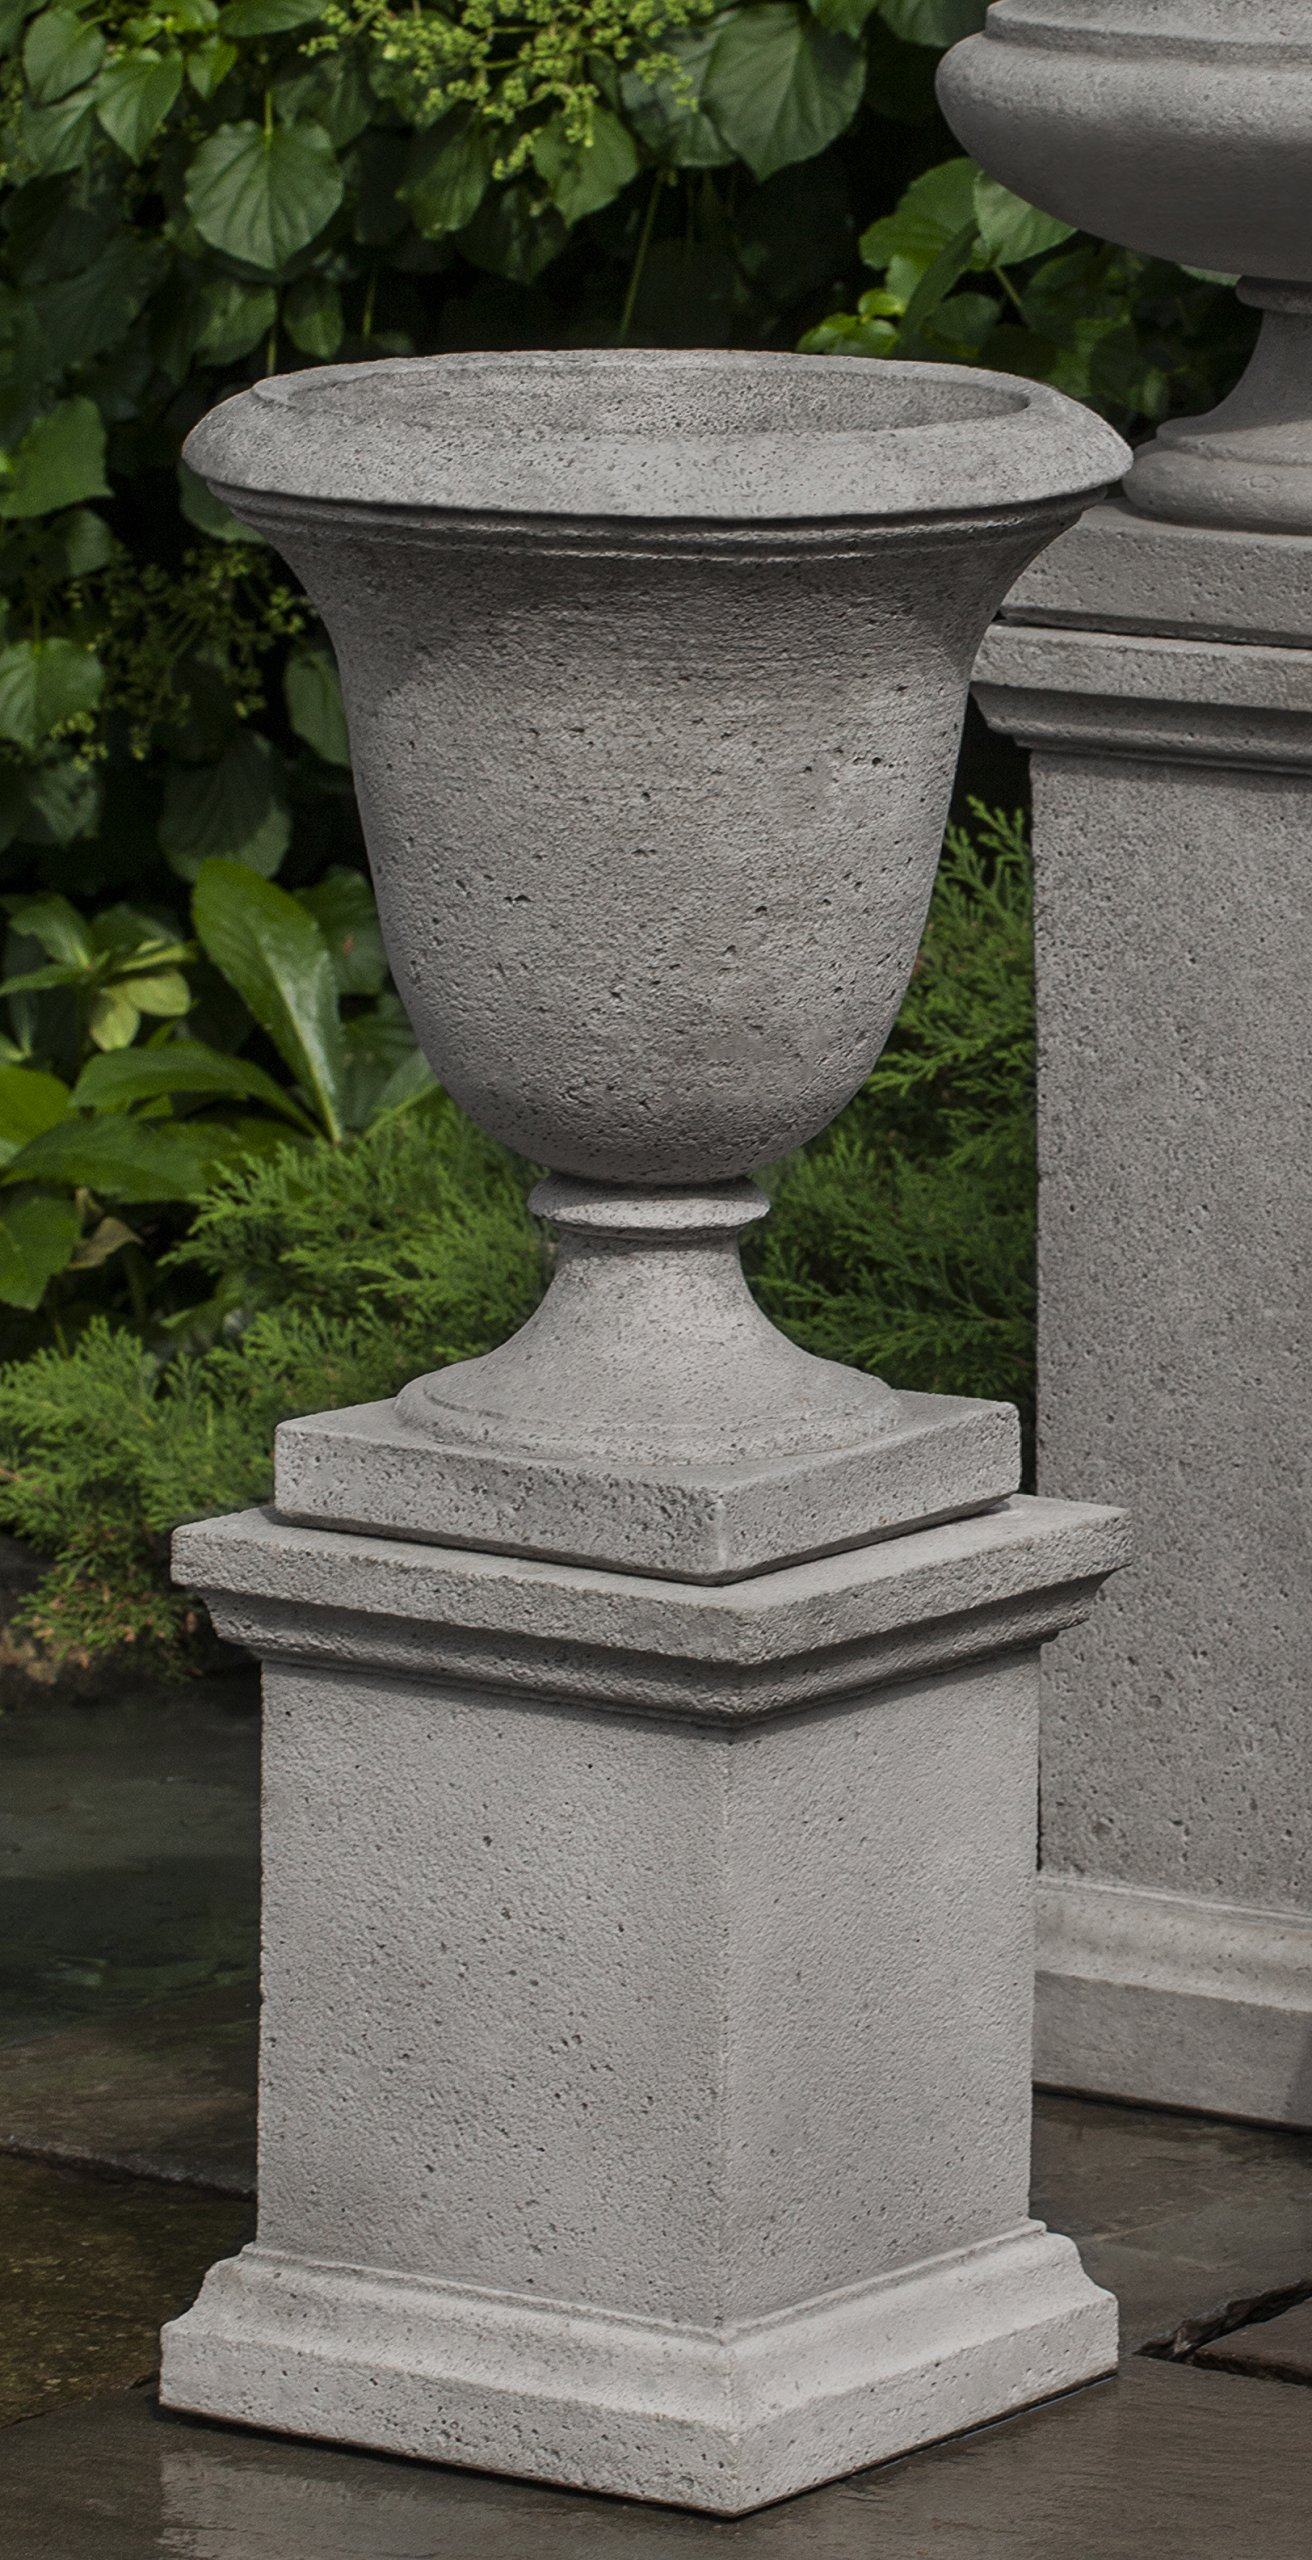 Campania International PPD-600-AS Linwood Urn with Low Wolcott Ped, Alpine Stone Finish